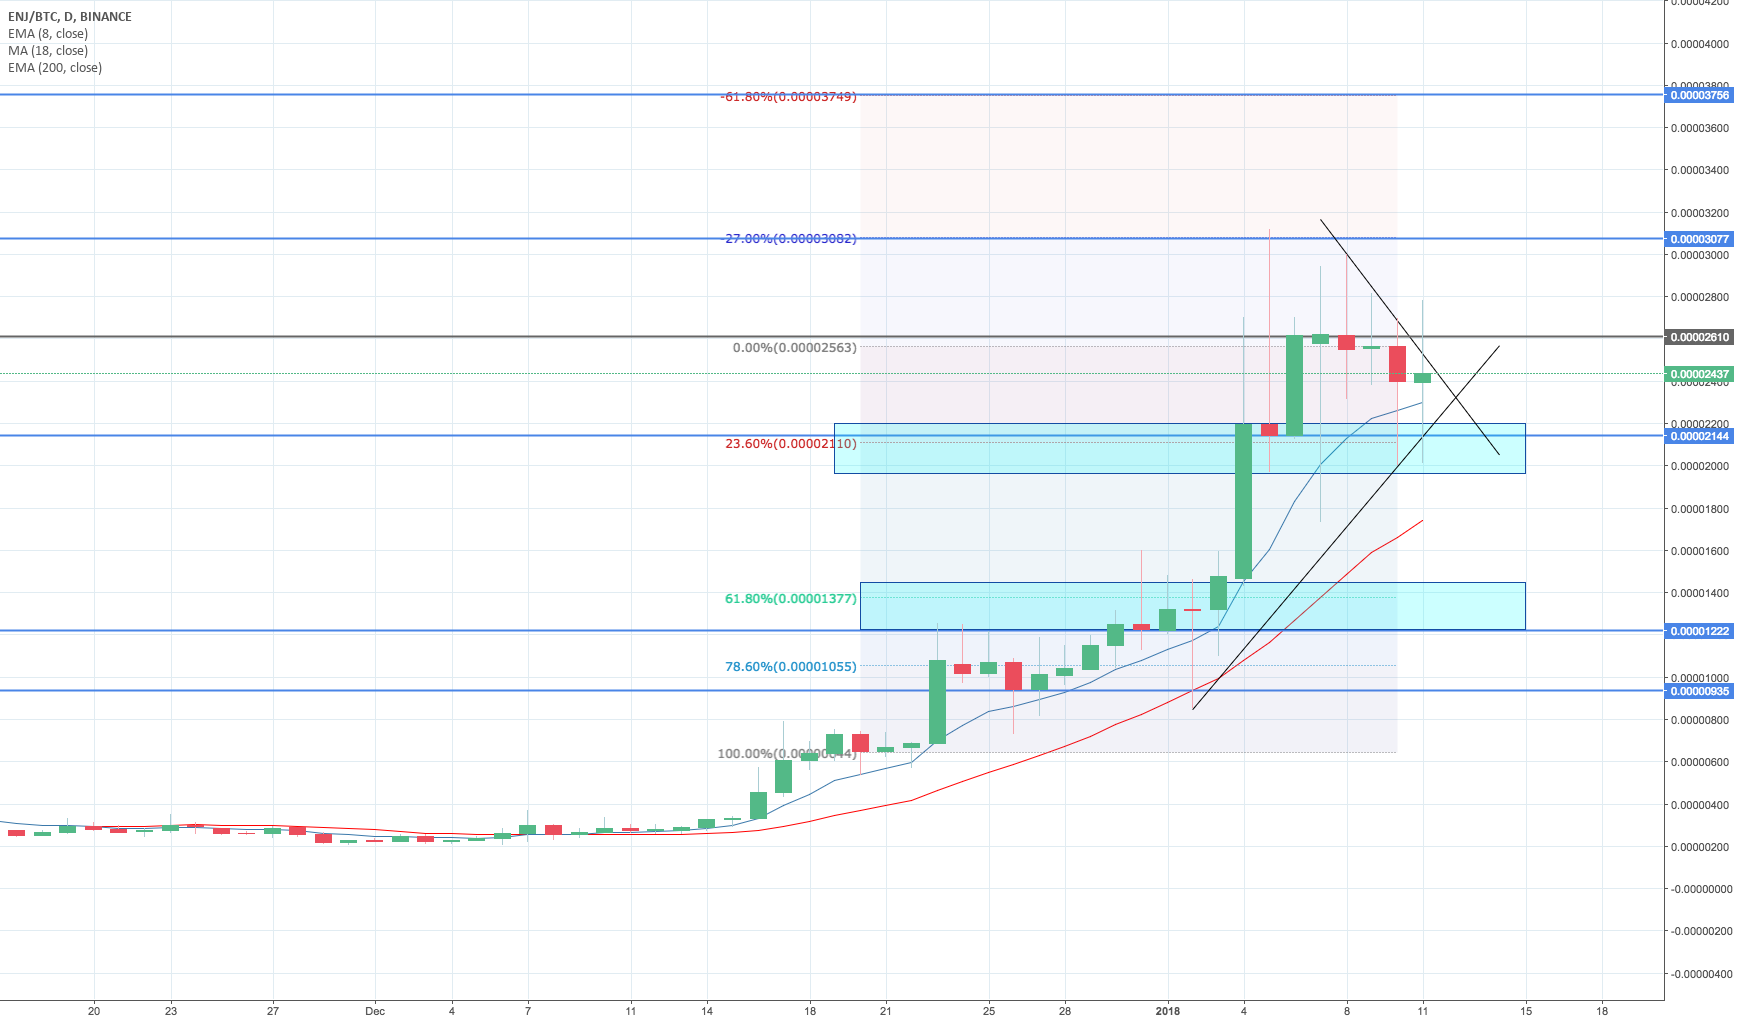 ENJ/BTC looks ok. Price accumulating.